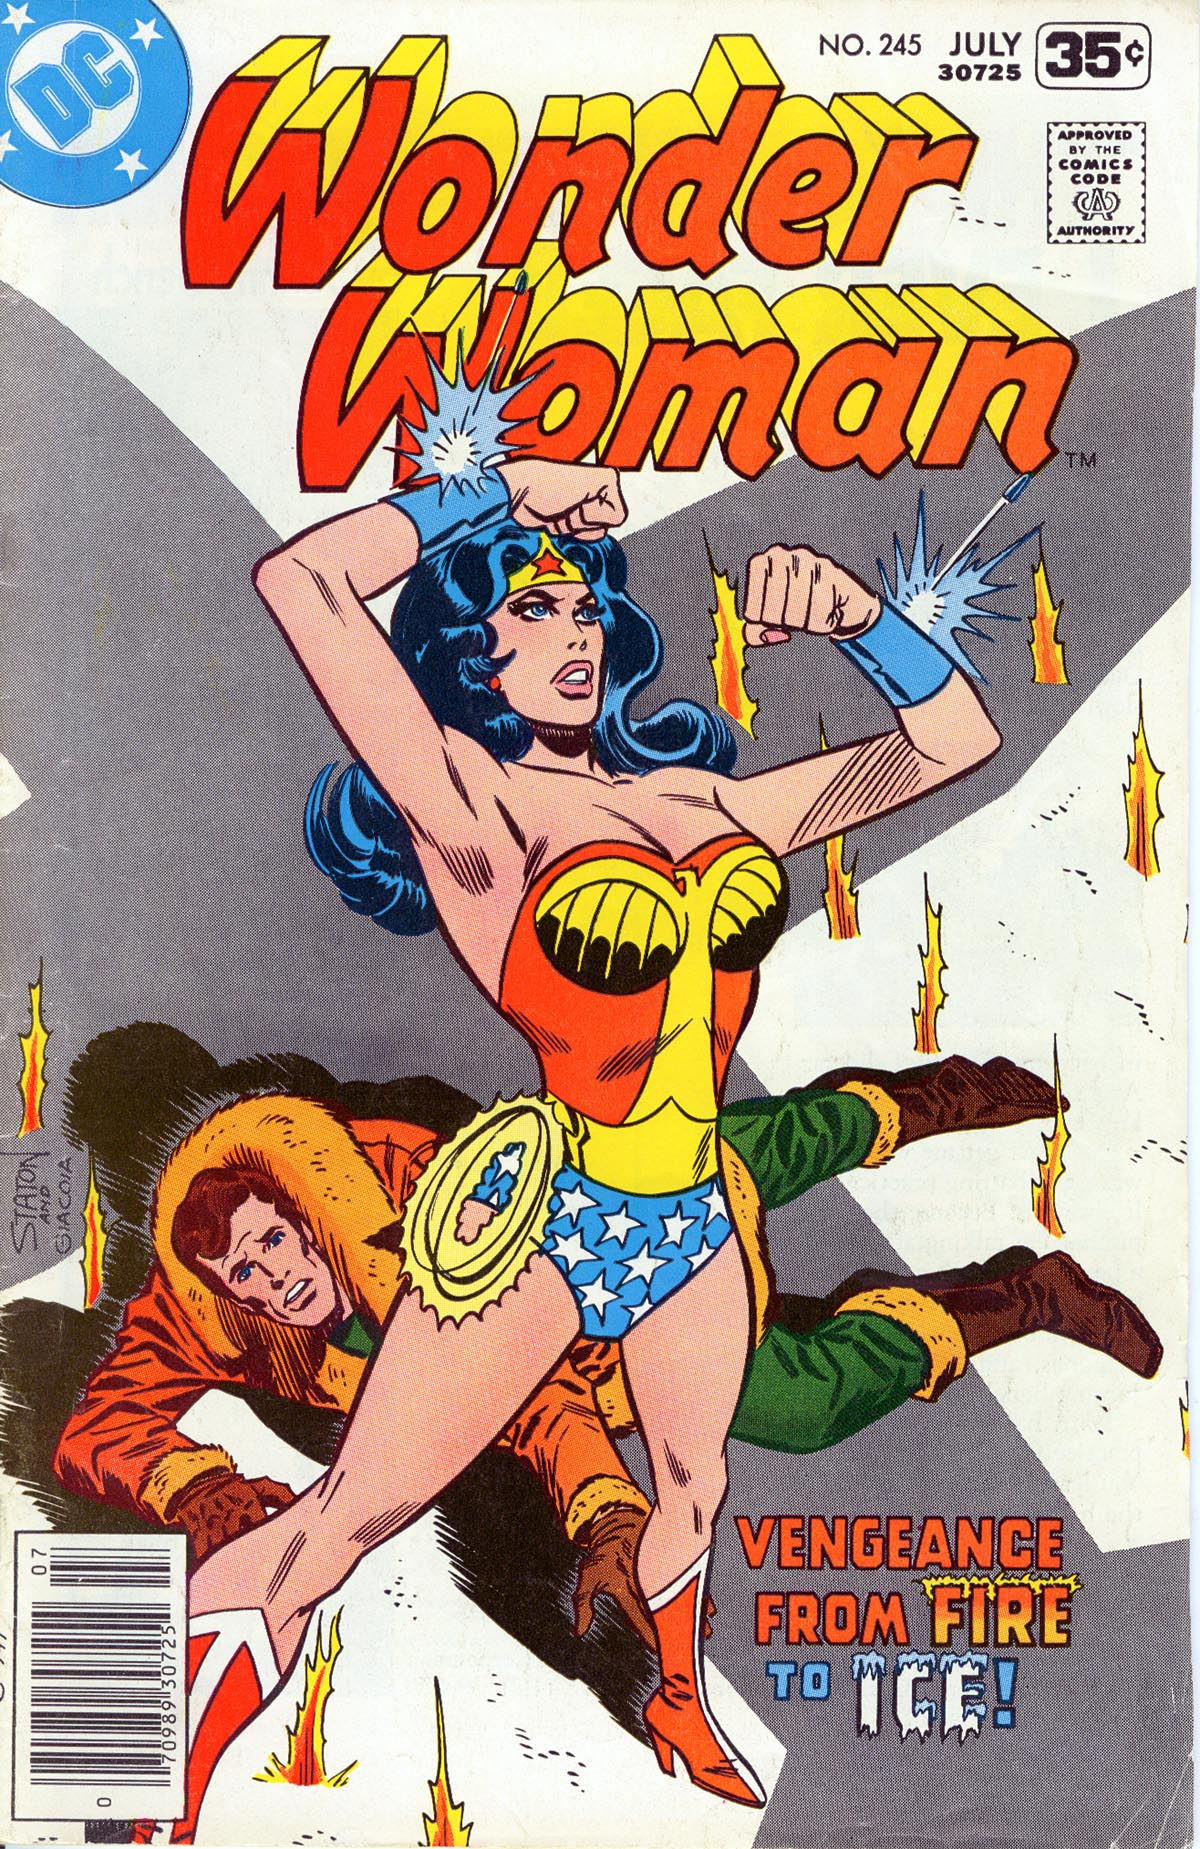 Wonder Woman (1942) #245, cover penciled by Joe Staton & inked by Frank Giacoia.